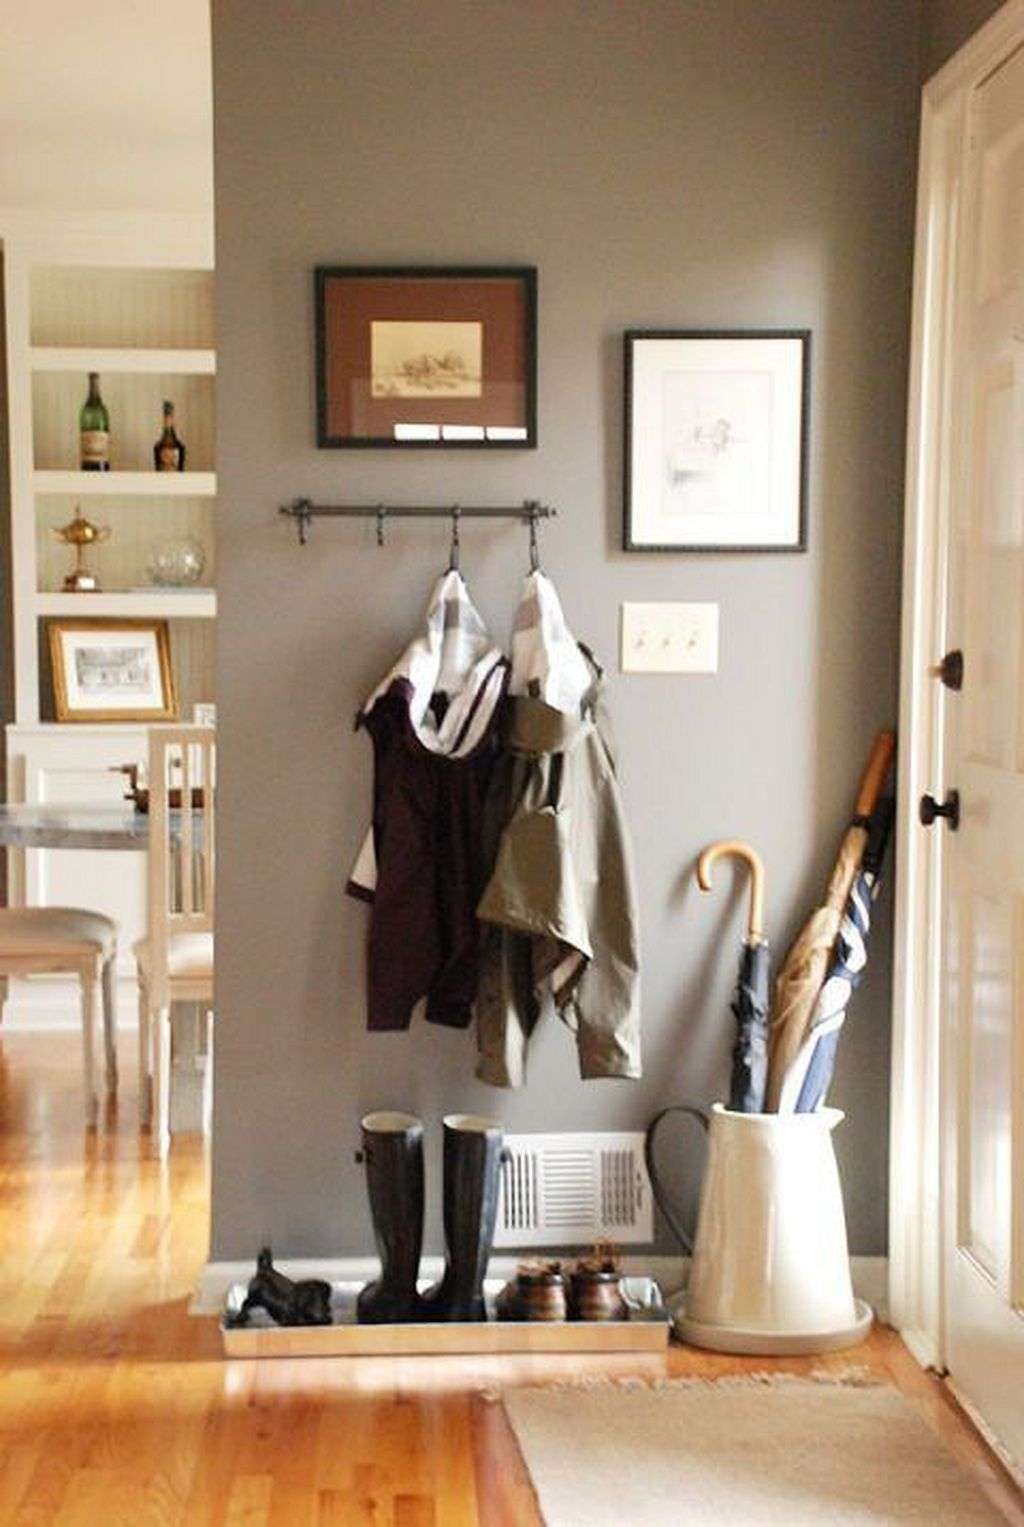 87 Smart And Easy Small Apartment Organization Ideas